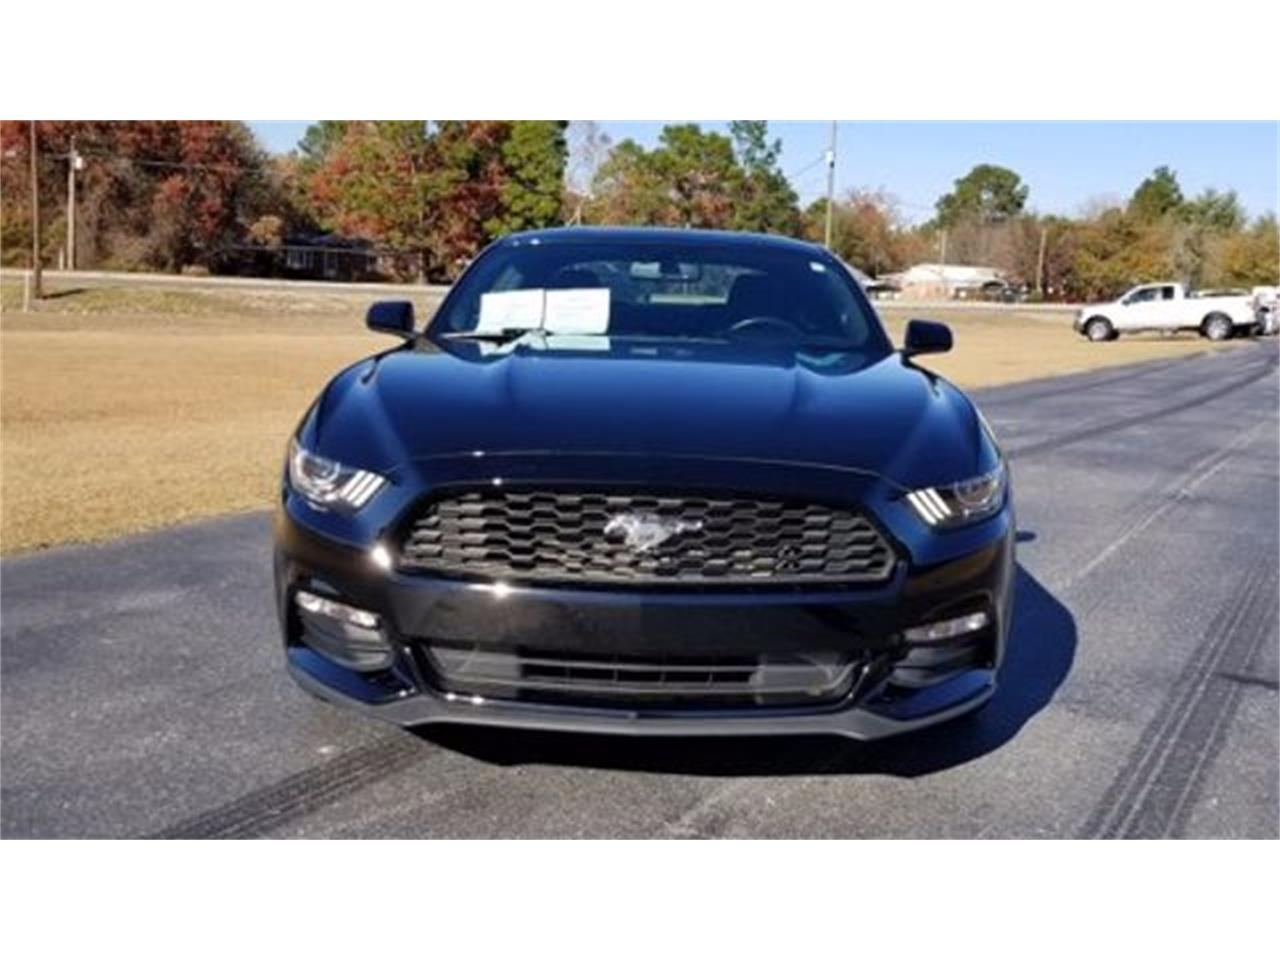 Large Picture of '16 Ford Mustang - $19,995.00 - MFZO